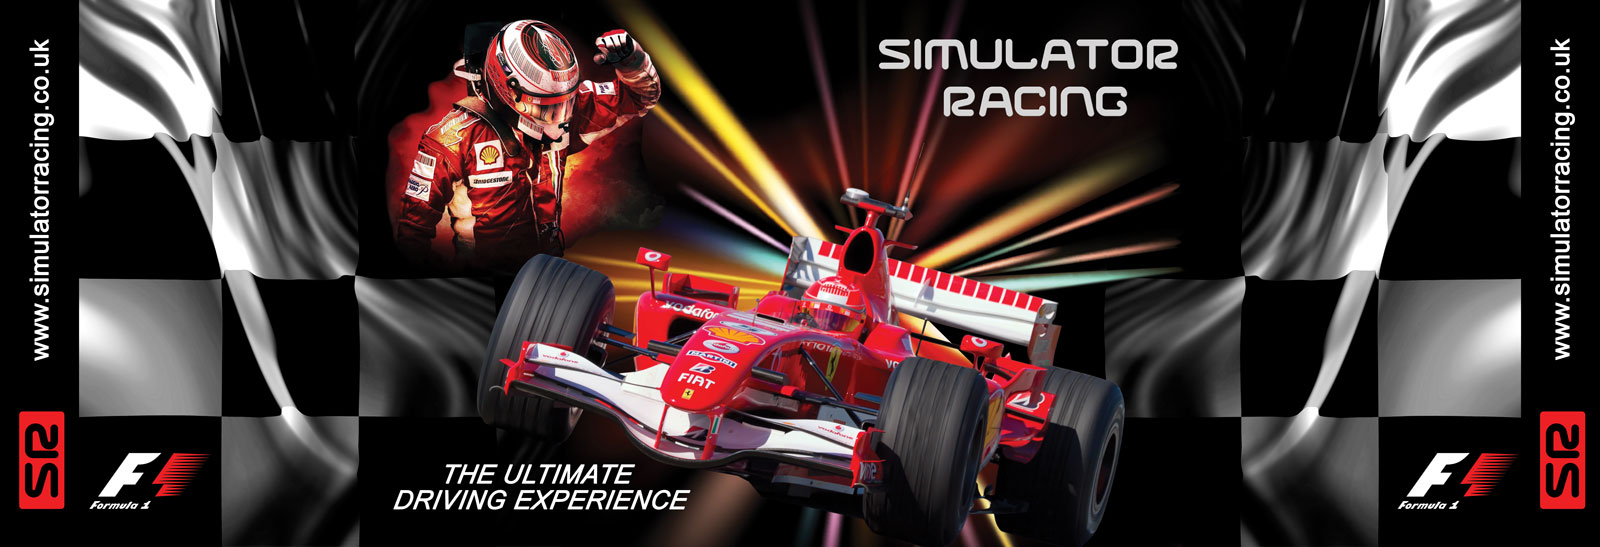 F1 Simulator Racing 'The Ultimate Driving Experience' 20' Banner